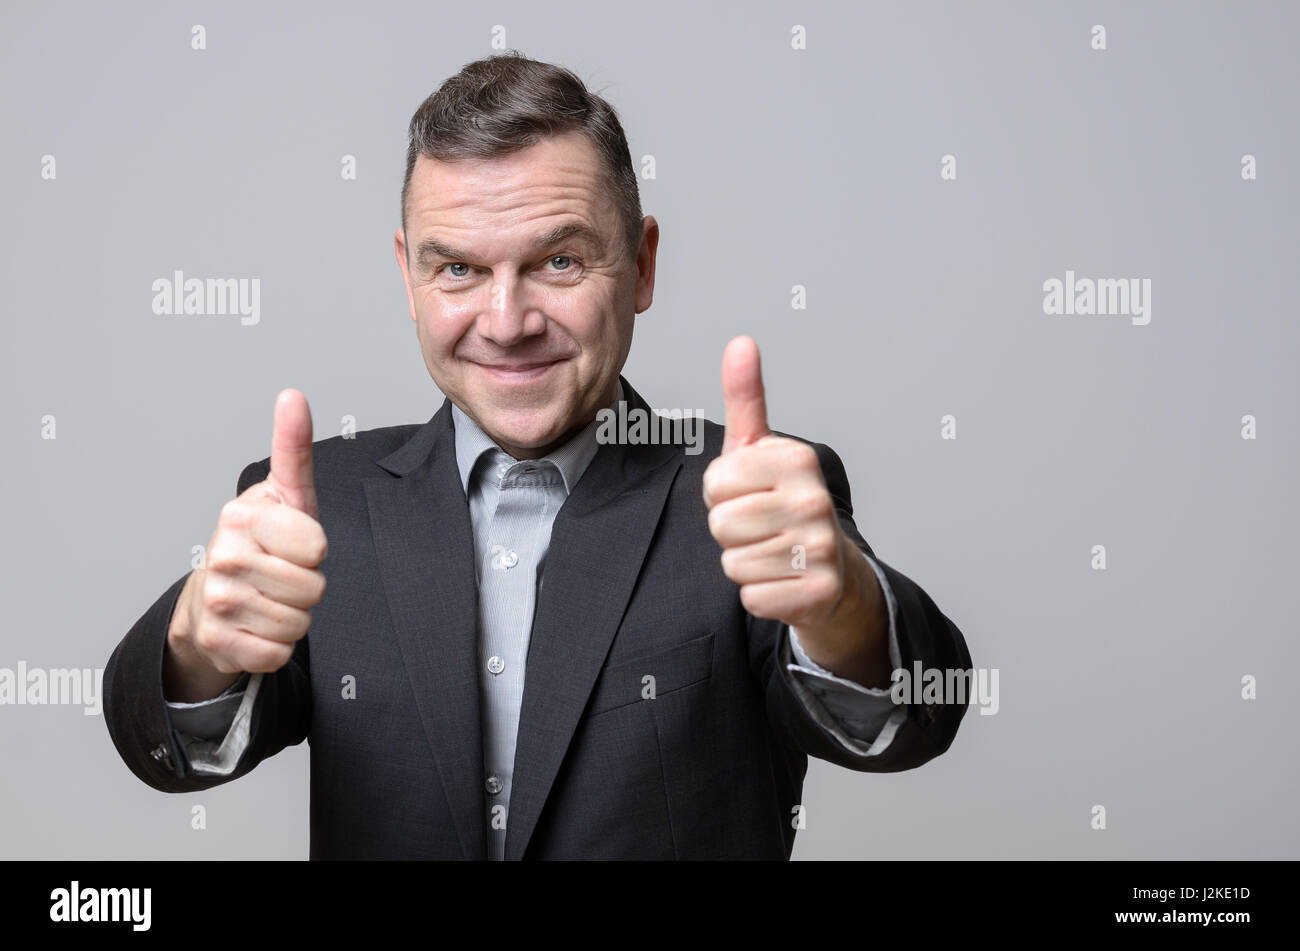 Grinning man in dark suit jacket with two thumbs up over gray background. Includes copy space. - Stock Image